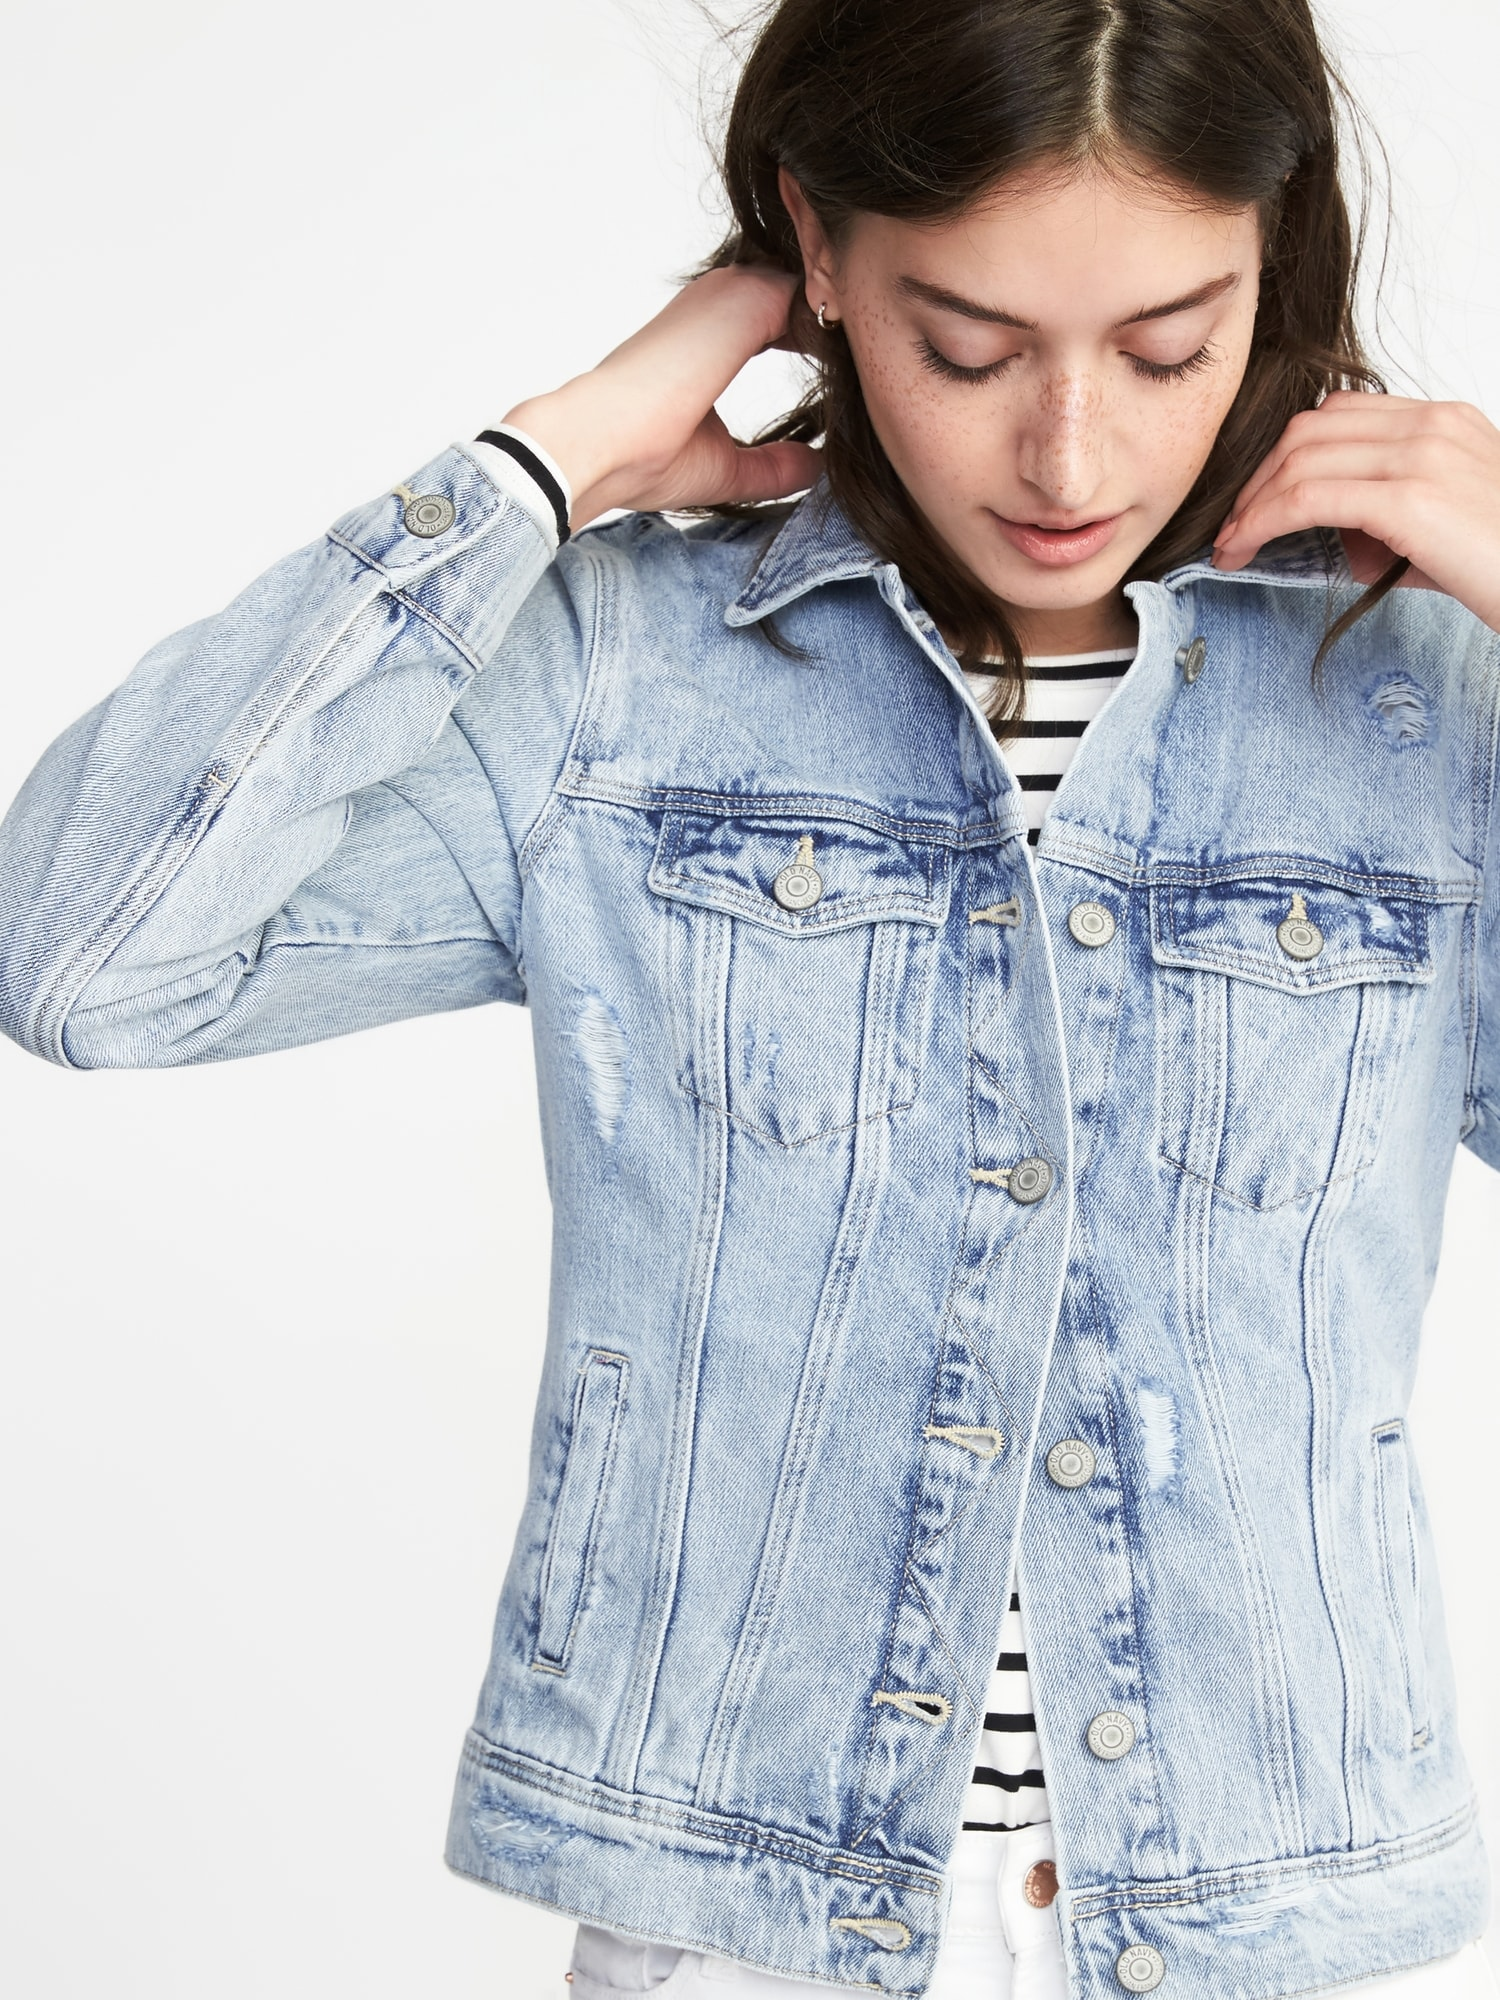 Distressed Denim Jacket for Women  c32579a2b